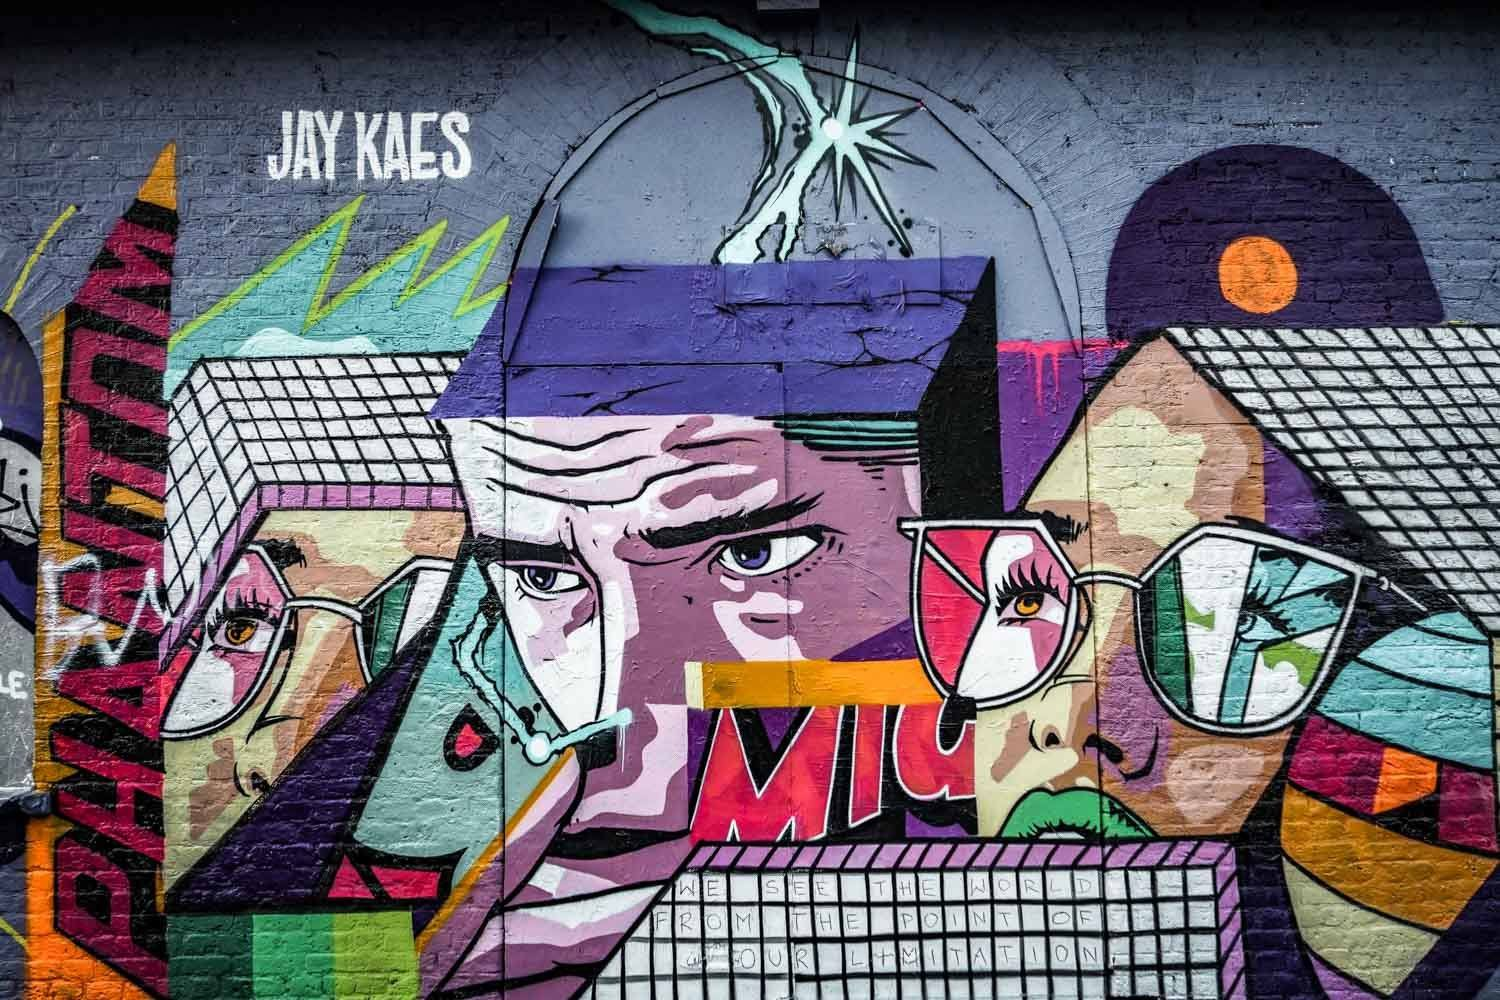 Jae Kaes Street Art in Shoreditch